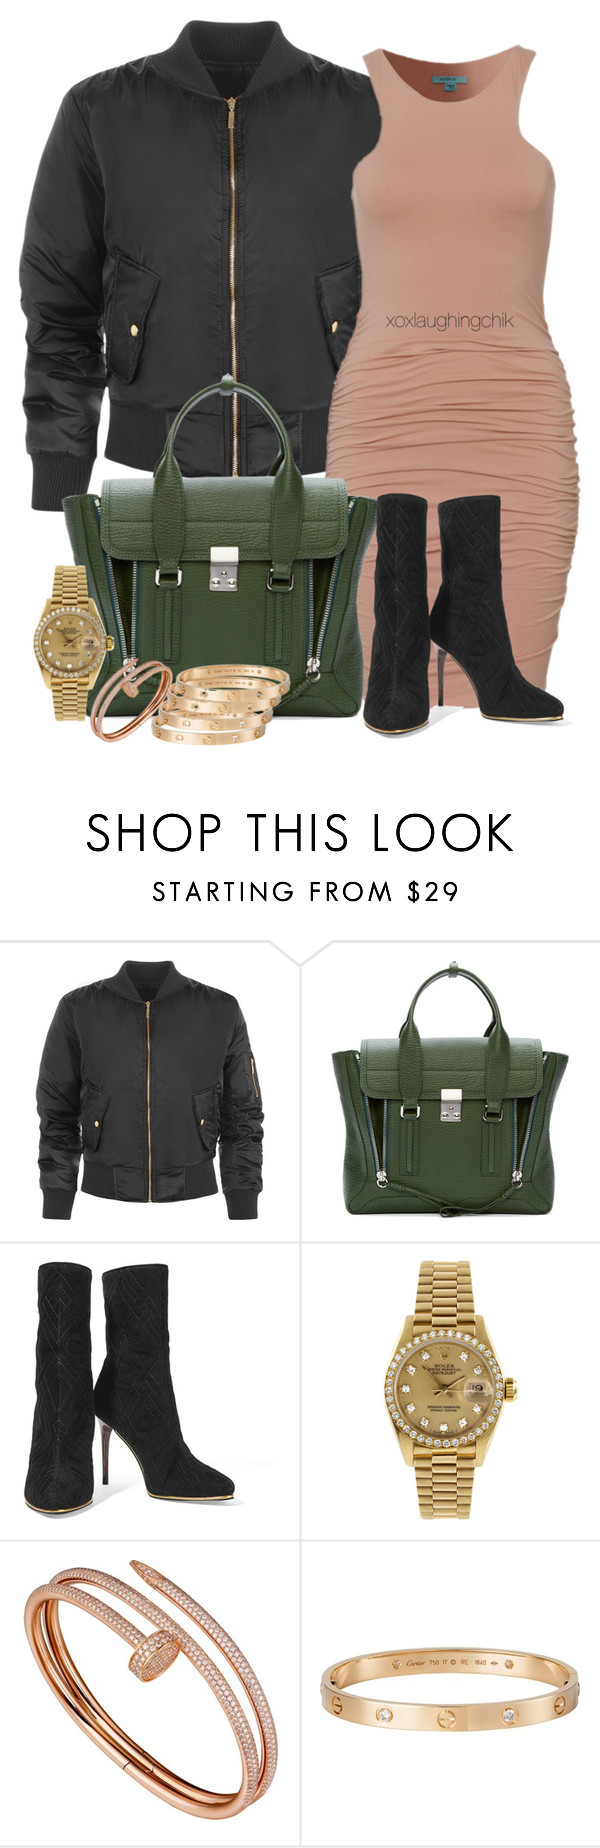 """Untitled #186"" by xoxlaughingchik ❤ liked on Polyvore featuring WearAll, 3.1 Phillip Lim, Balmain, Rolex, Cartier, women's clothing, women, female, woman and misses"